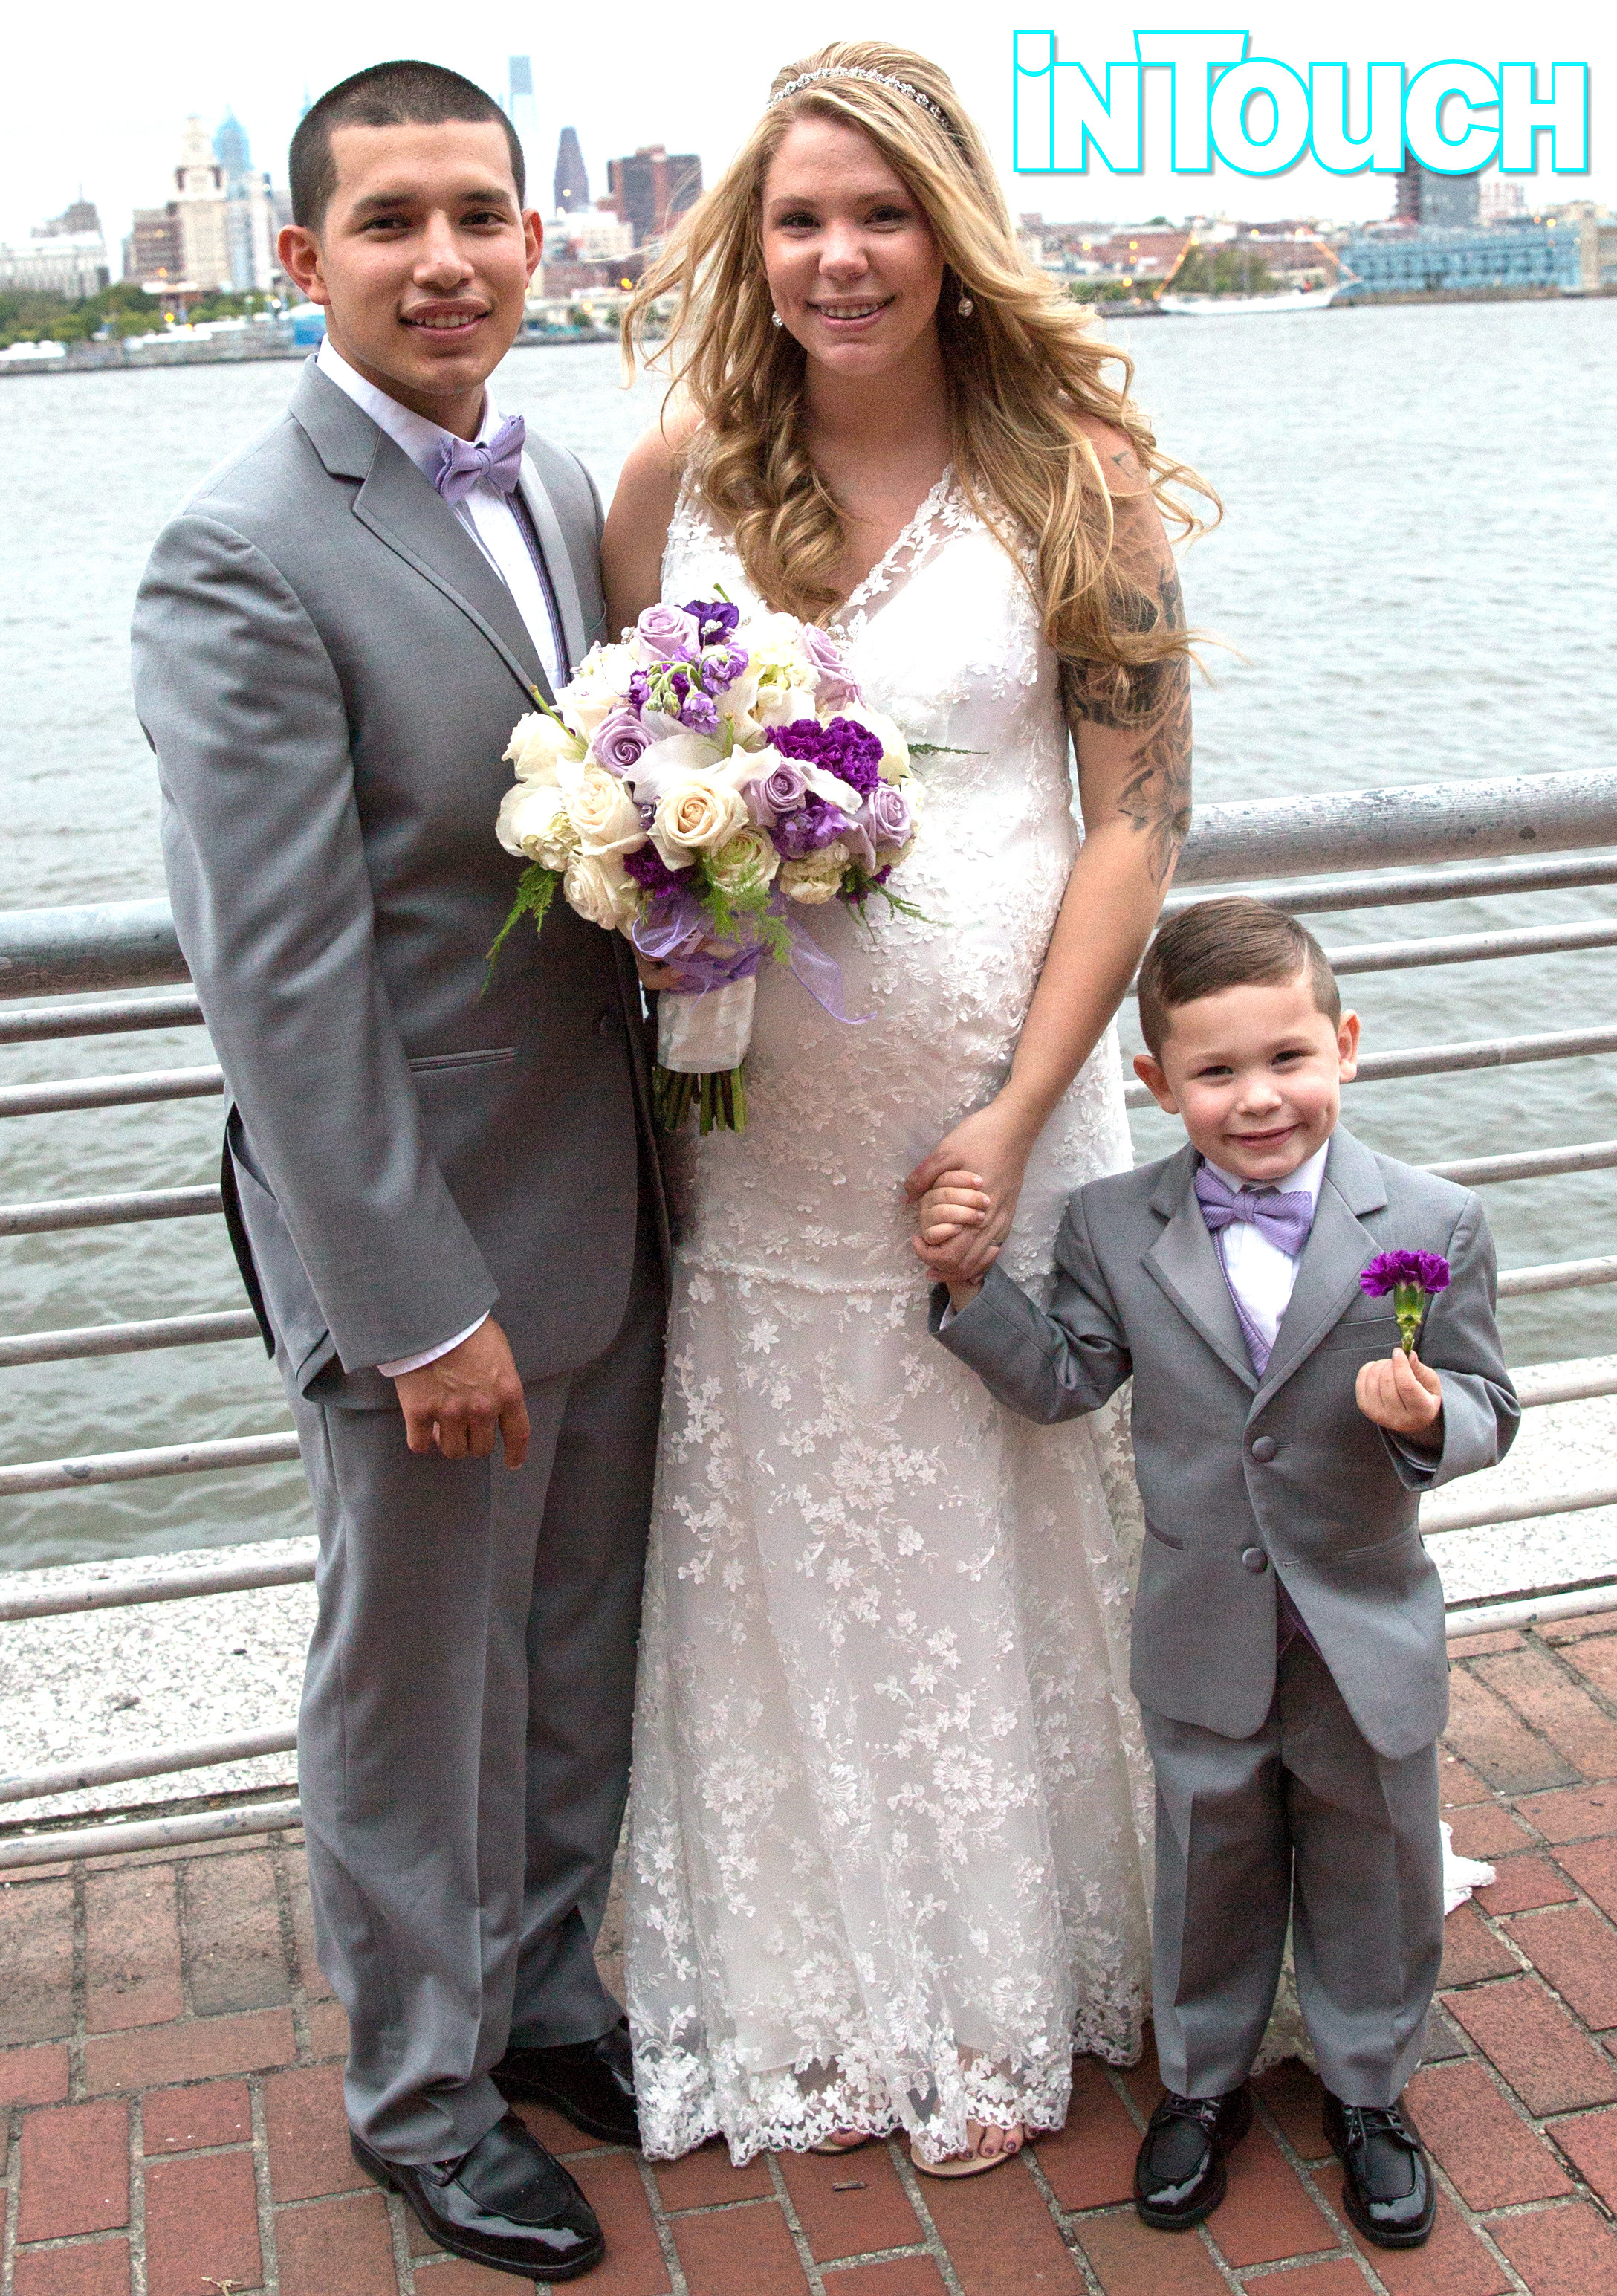 Teen Mom 2 s Kailyn Lowry Shows f Baby Bump in Her Wedding Dress